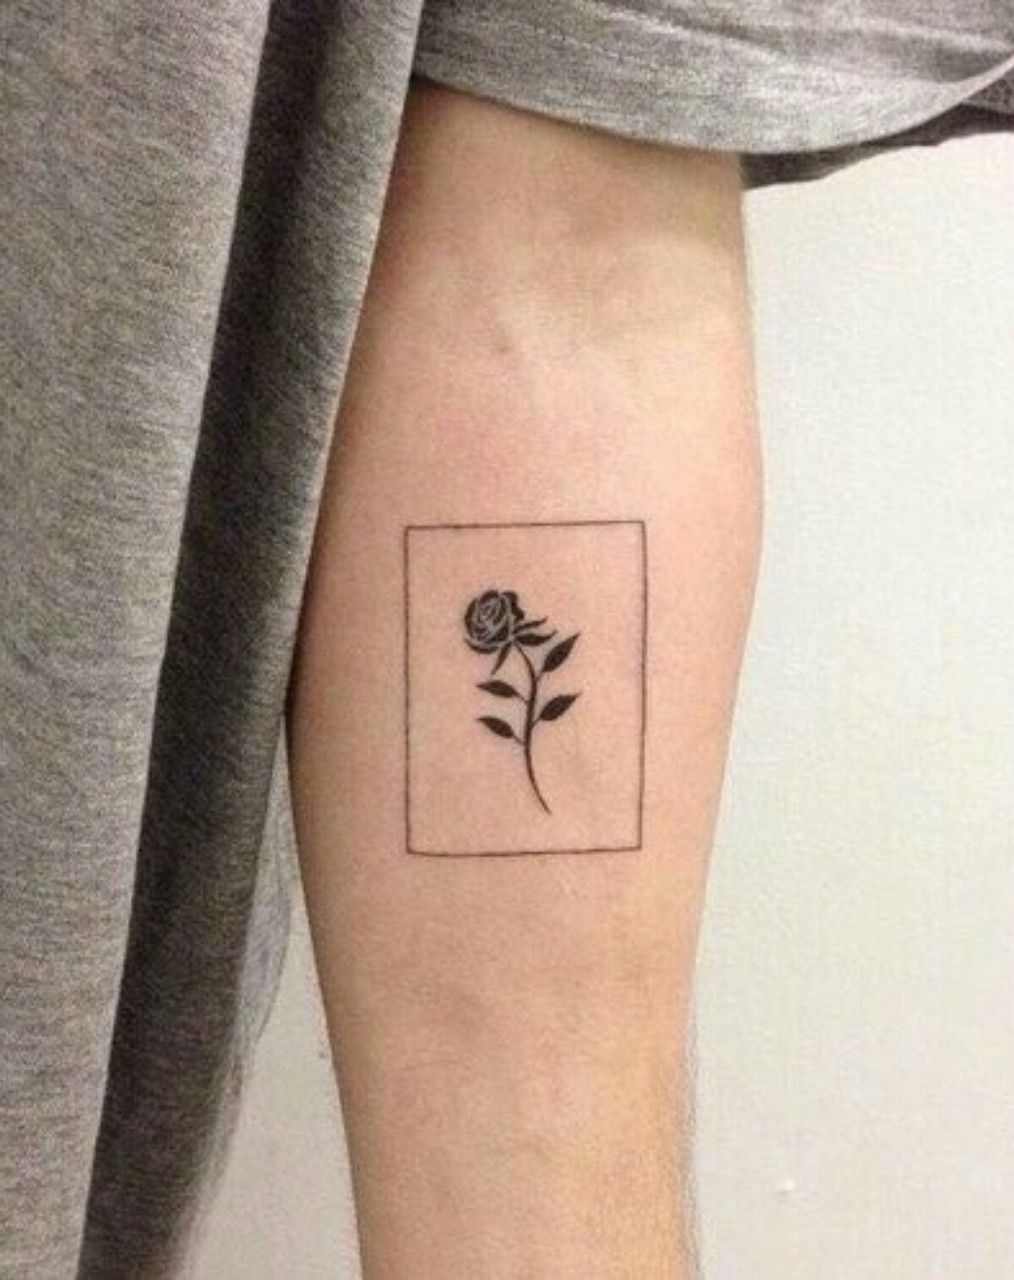 8f717ab81a19d Uploaded by Glamor 205. Find images and videos about grunge, flowers and  tattoo on